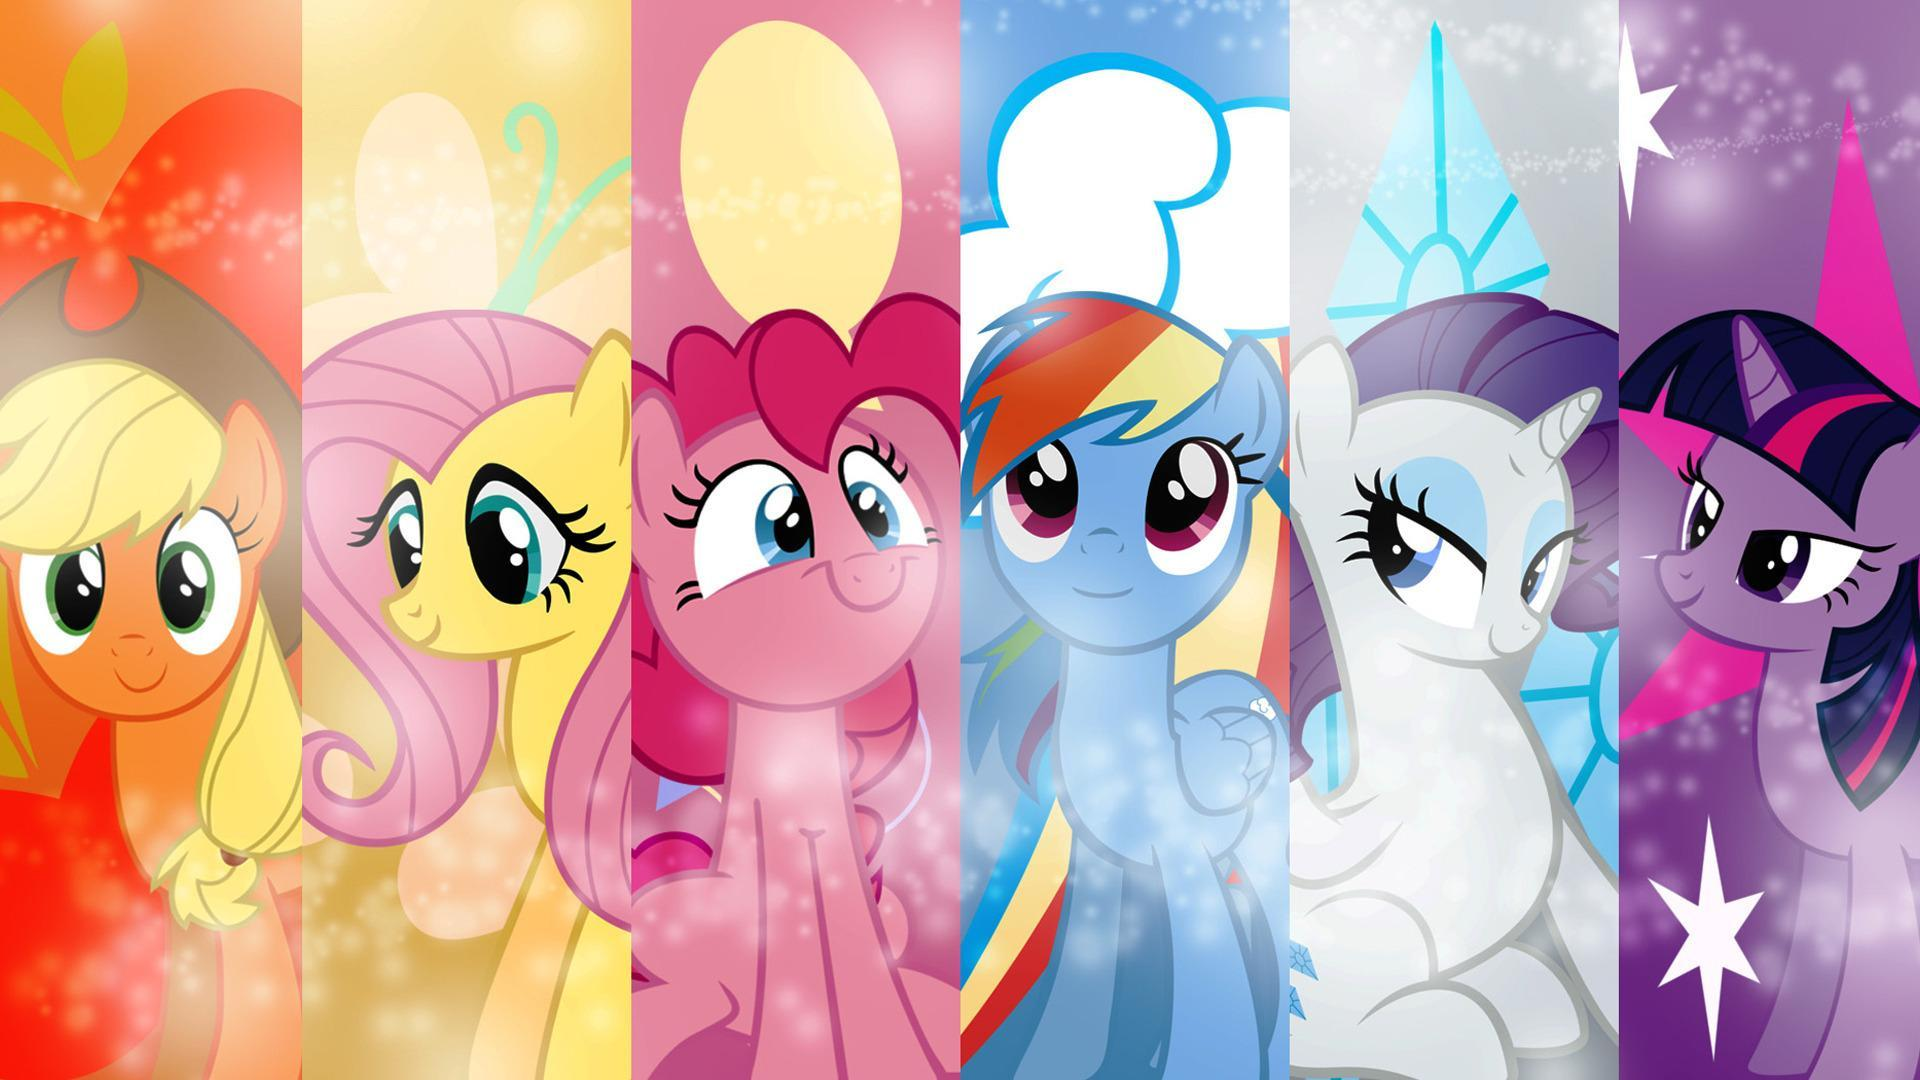 What would you look like as a MyLittlePony?